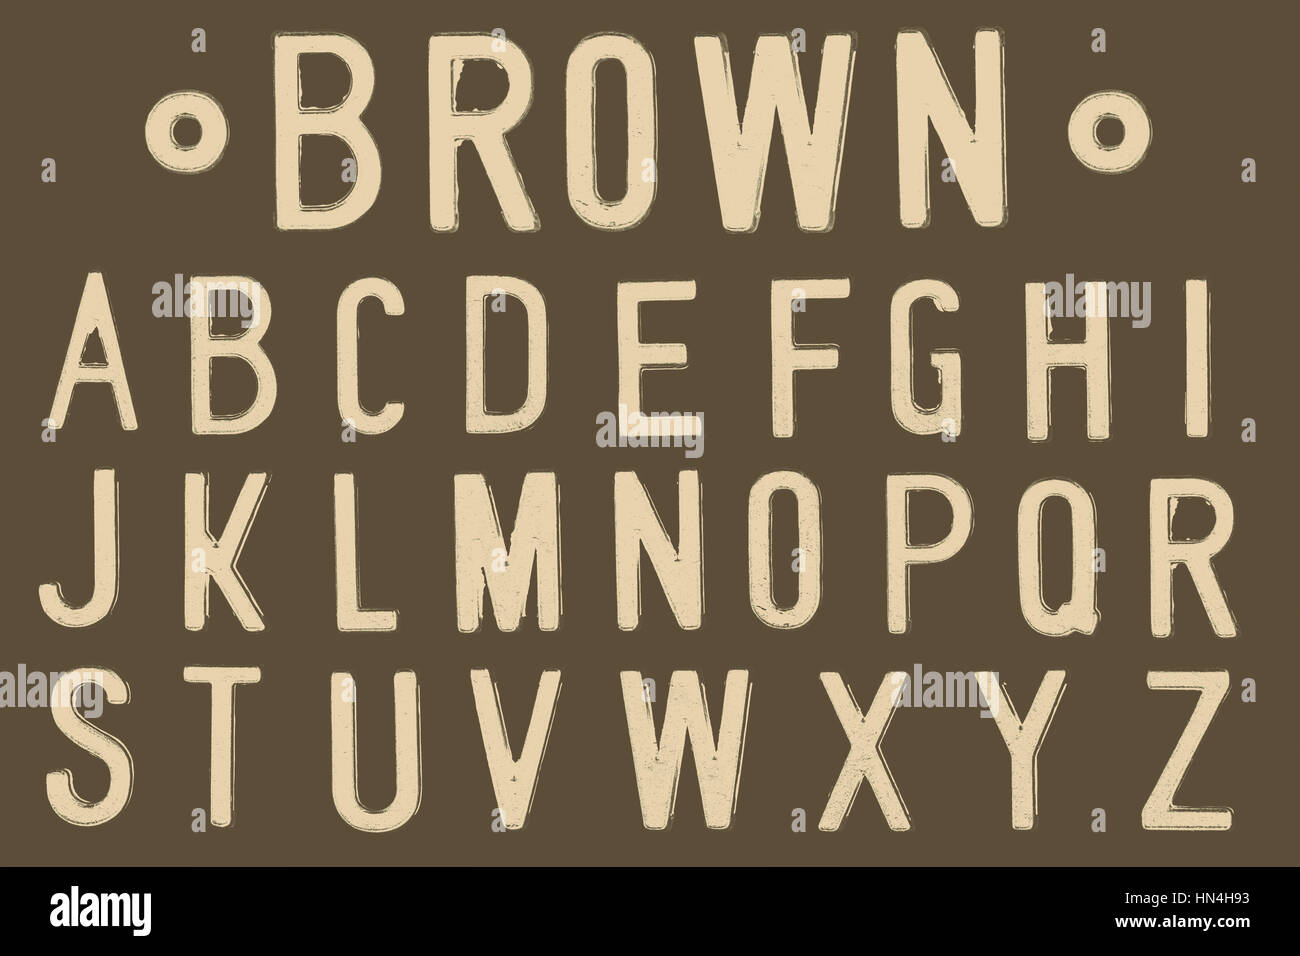 Brown Font, Retro style font face or Font type letter A to Z - Stock Image